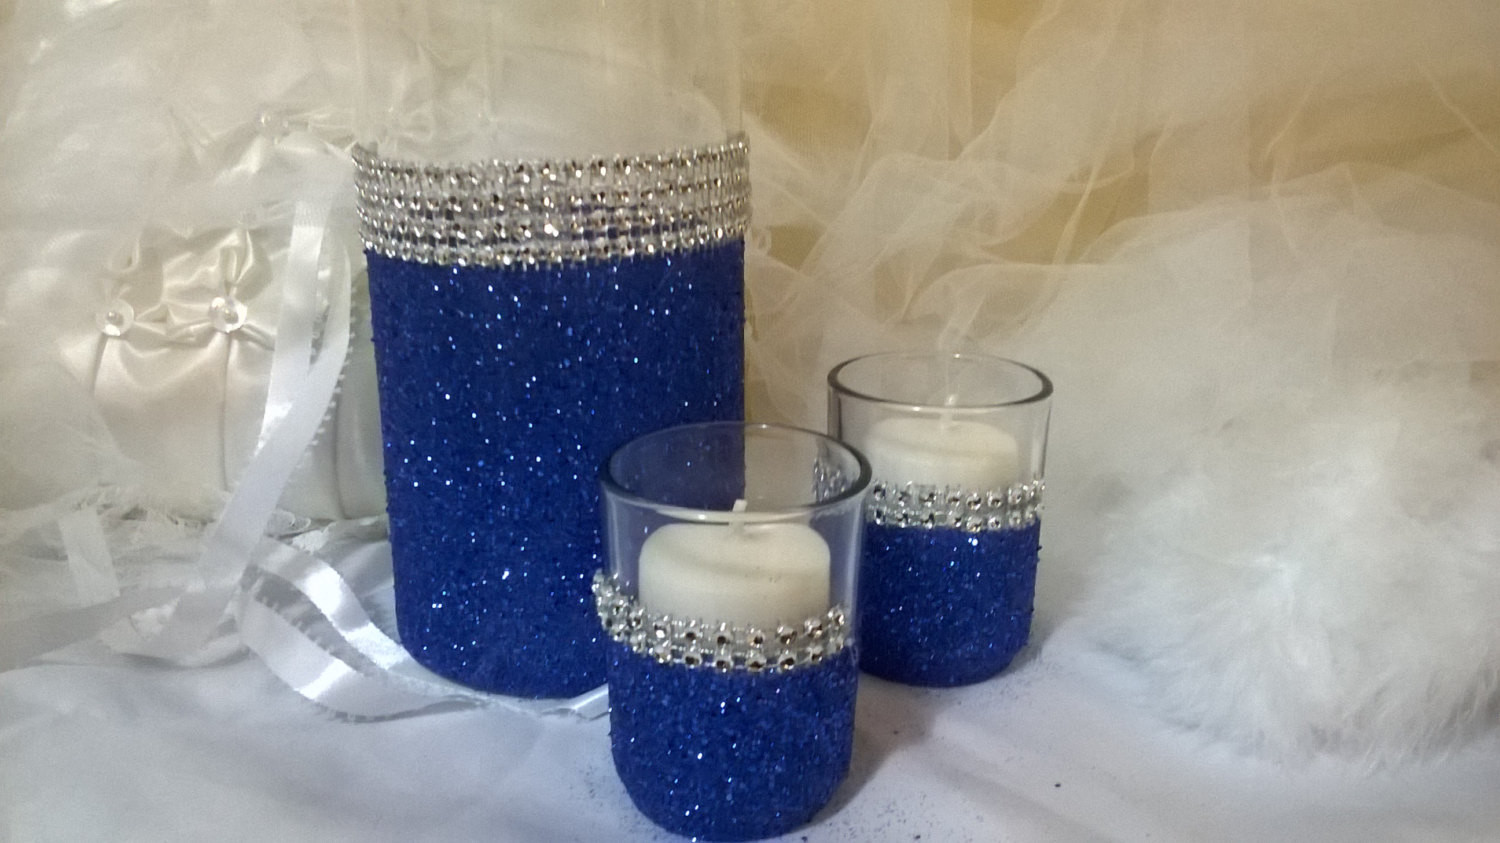 tall vase ideas of breathtaking wedding vases around tallh vases decorating with throughout breathtaking wedding vases around tallh vases decorating with glitter diy vasei 0d dihizb a